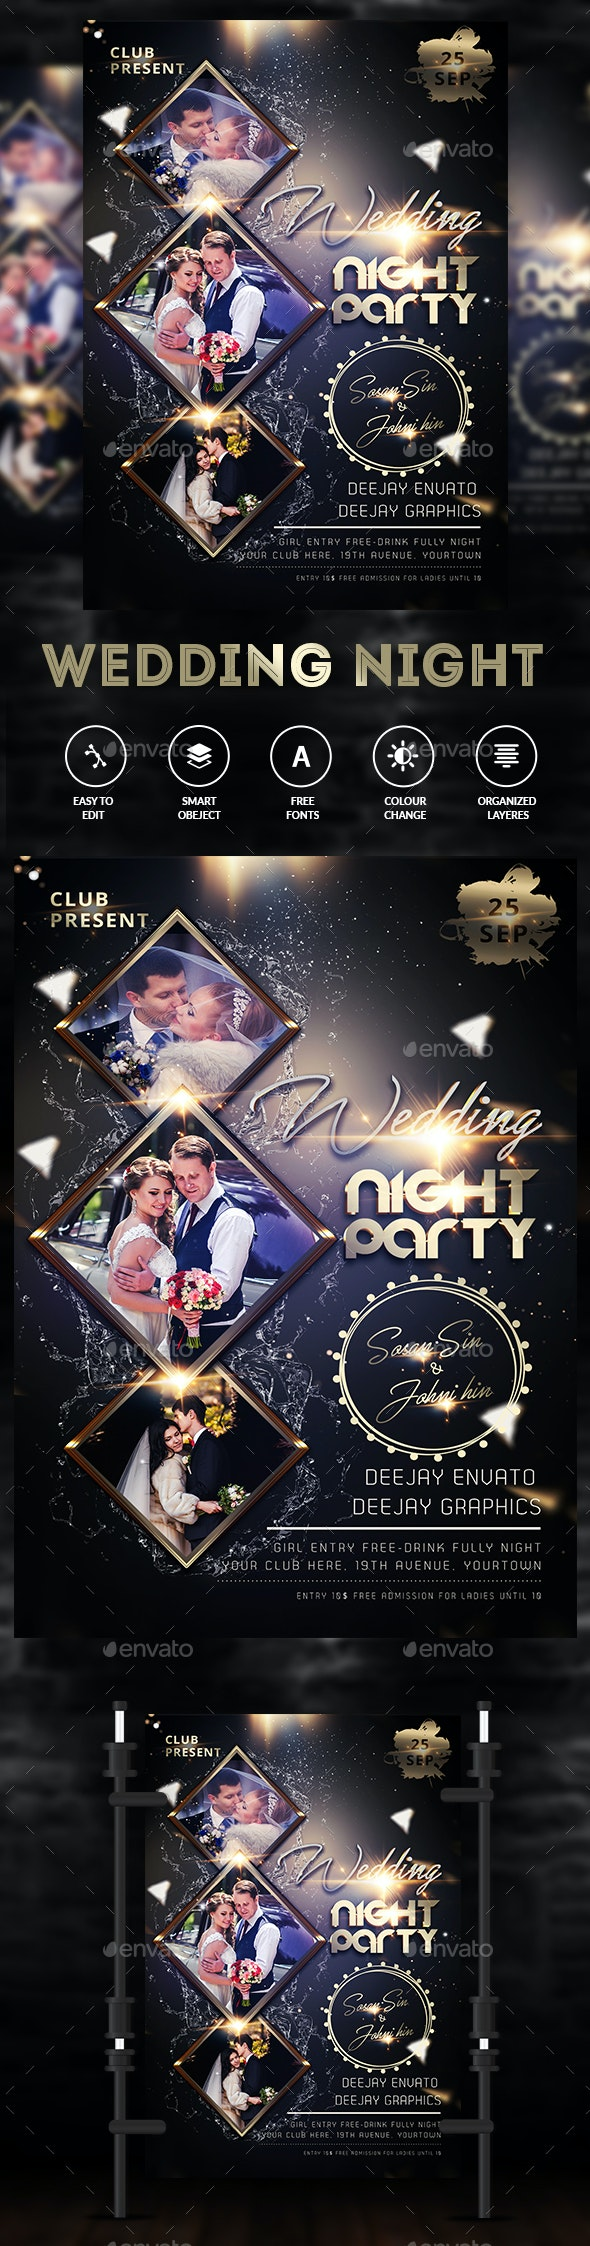 Wedding Party Invitation - Clubs & Parties Events